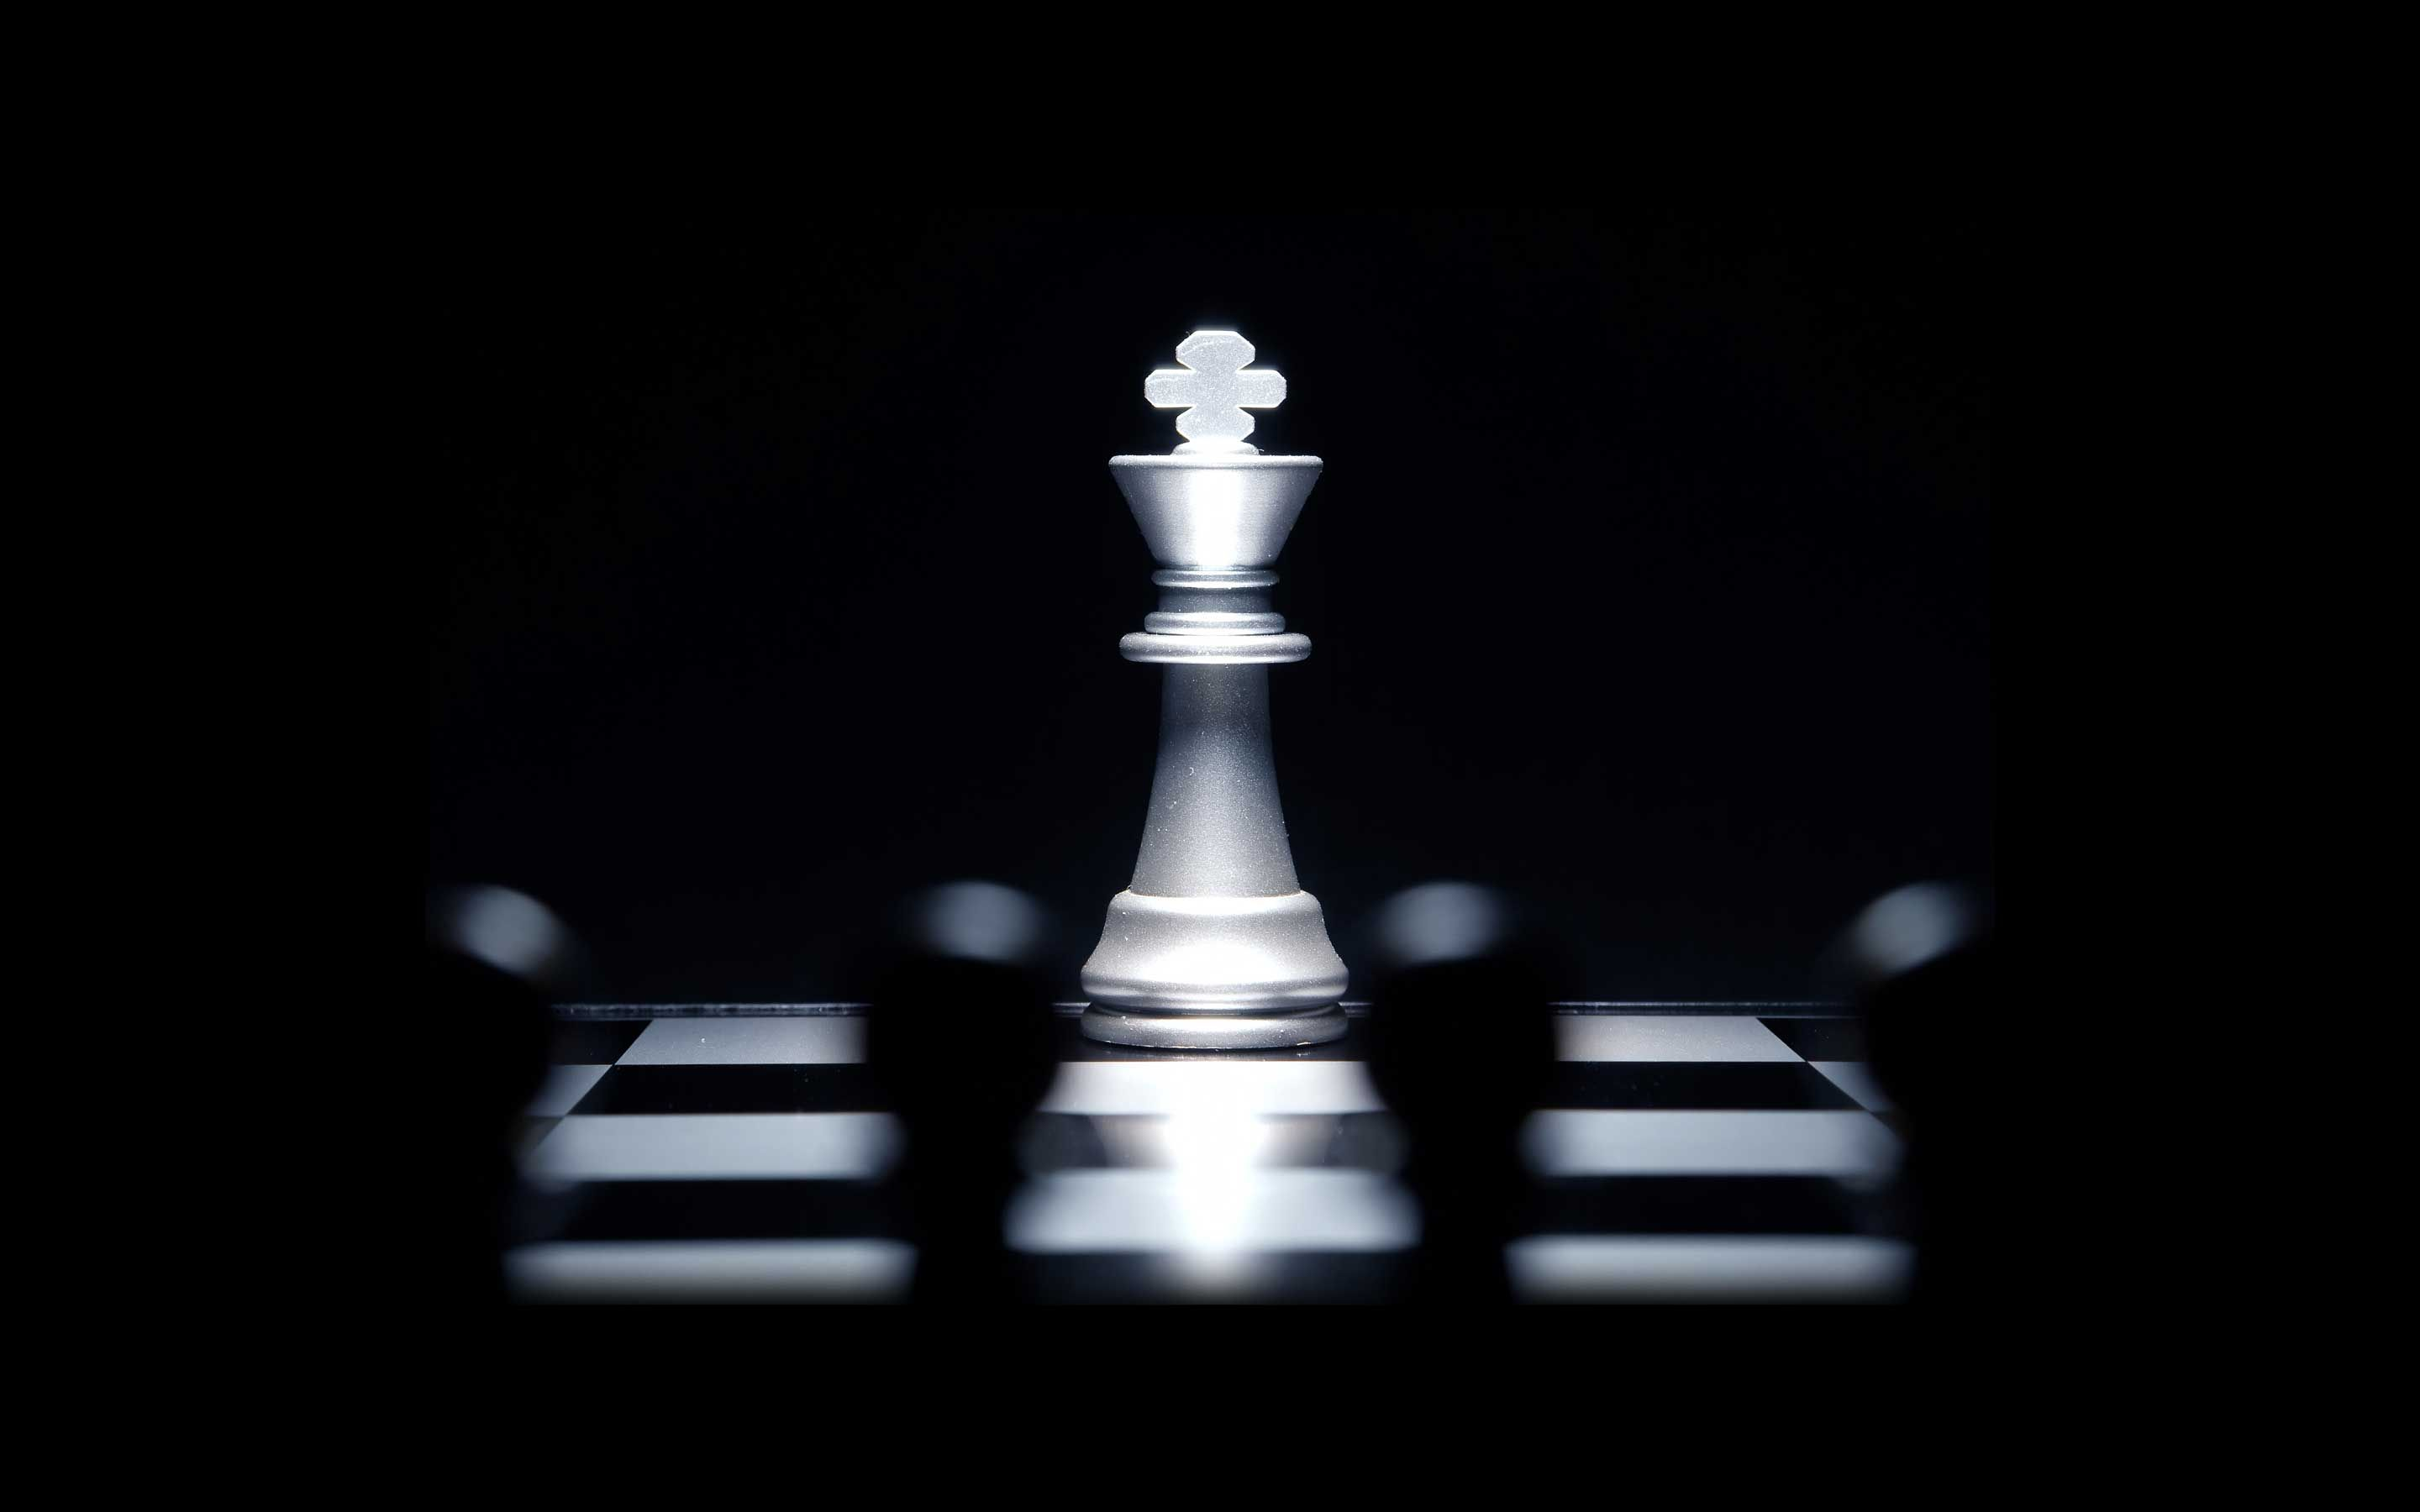 Chess wallpapers hd wallpapers pinterest chess hd wallpaper chess wallpapers voltagebd Images